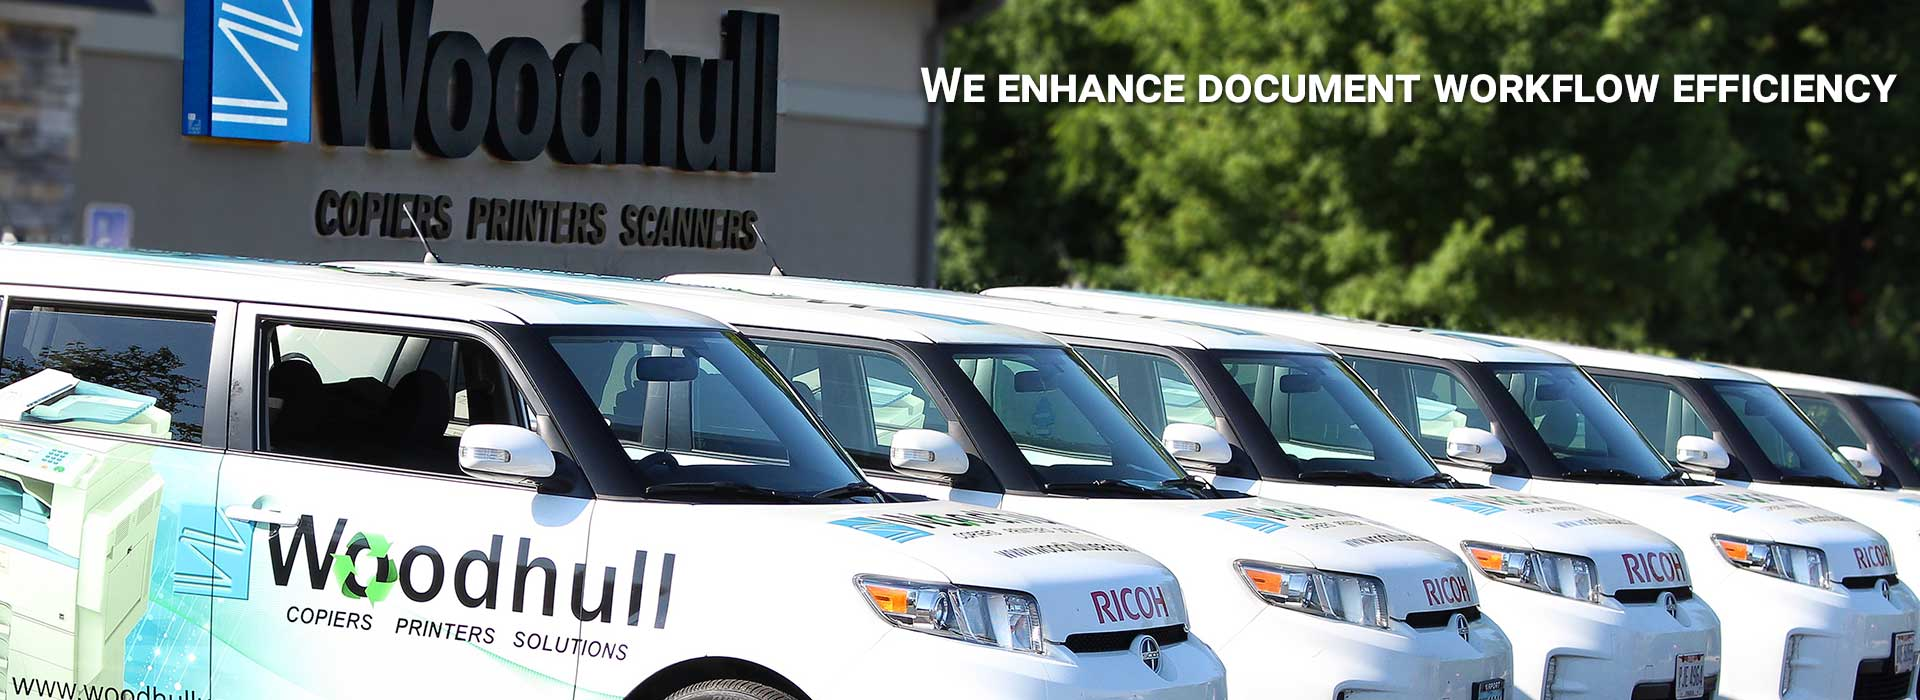 We enhance document workflow efficiency